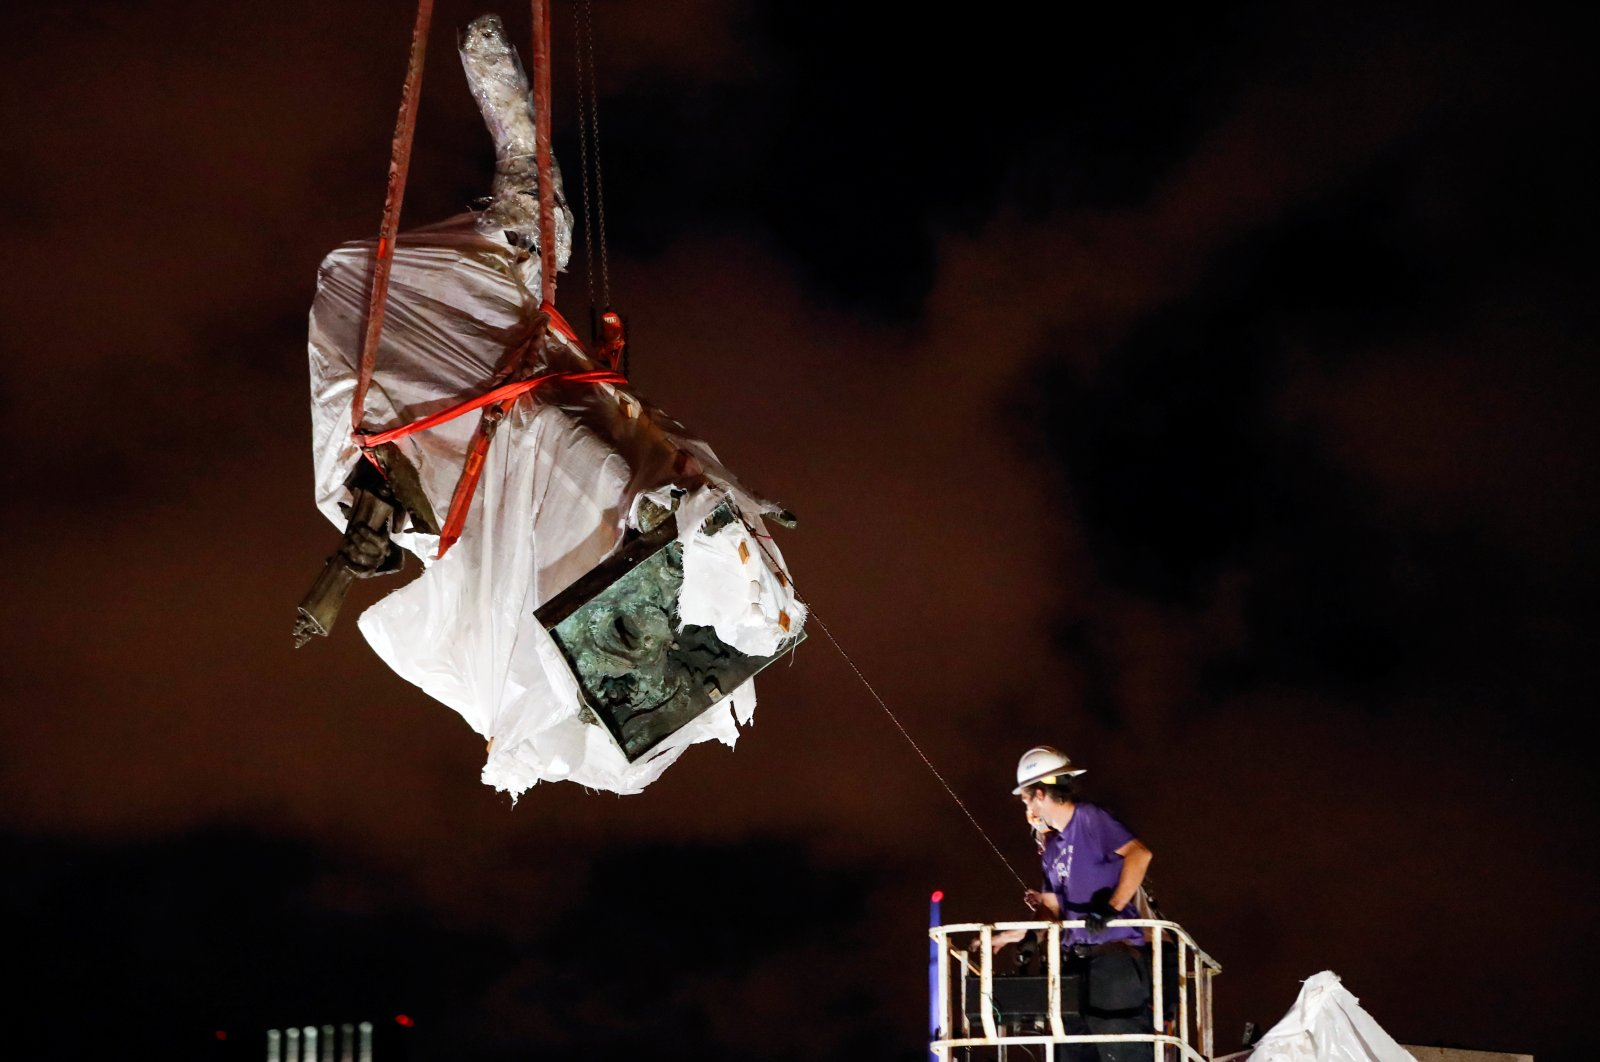 Christopher Columbus statue is being removed from the Grant Park in Chicago, Illinois, US, July 24, 2020. (Reuters Photo)